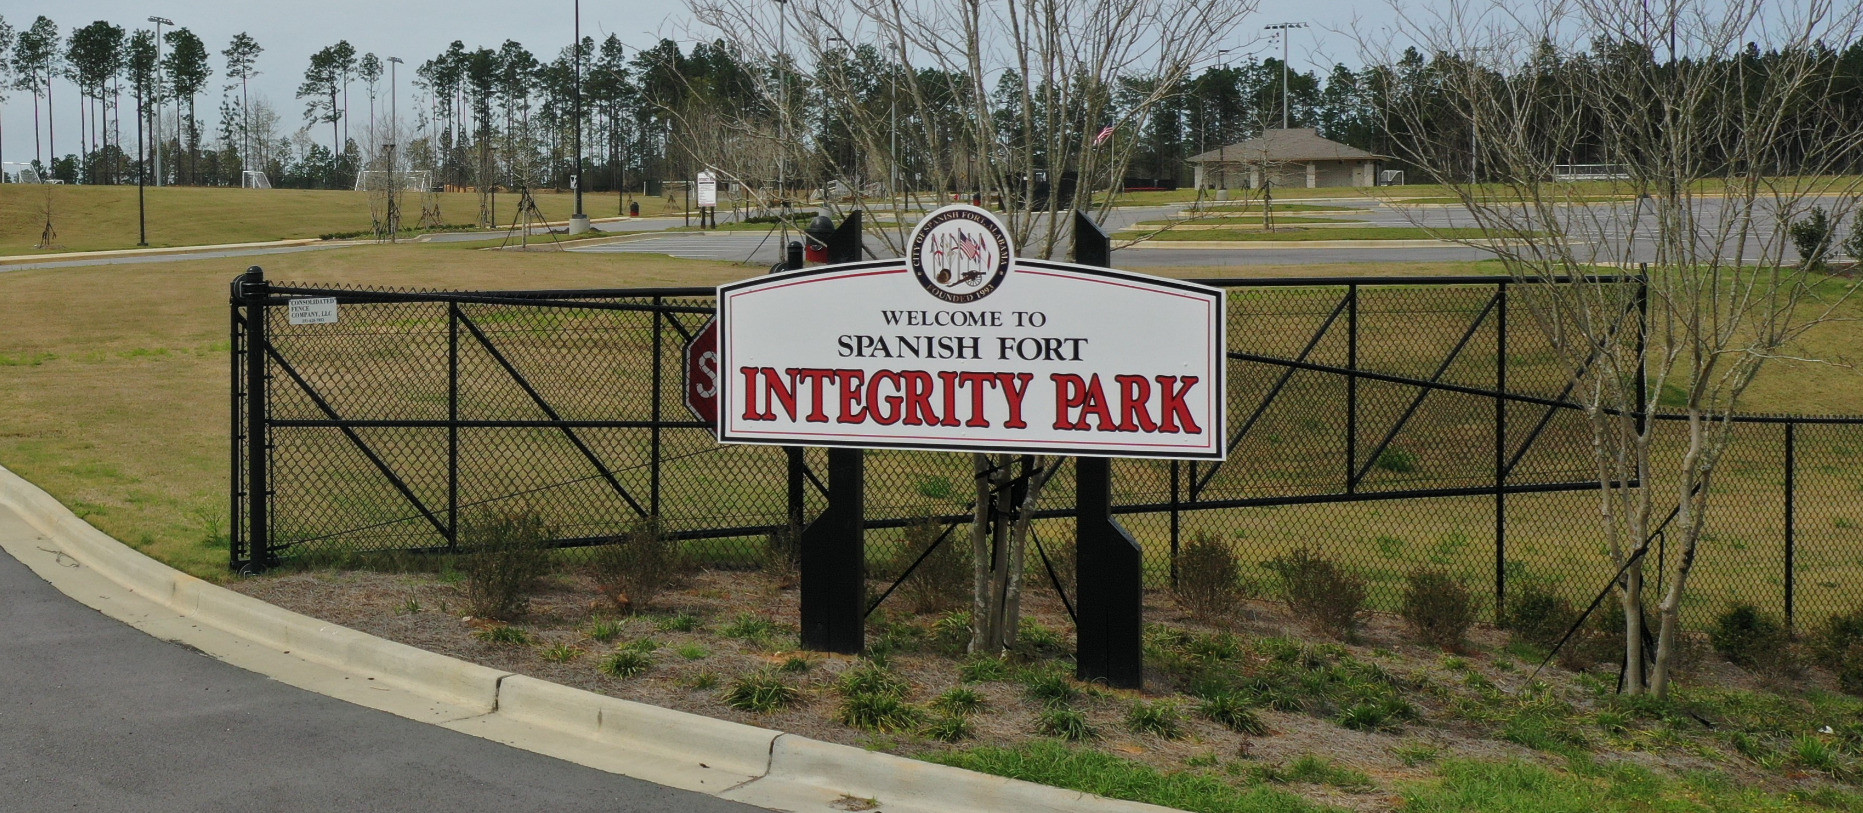 intergrity park signage